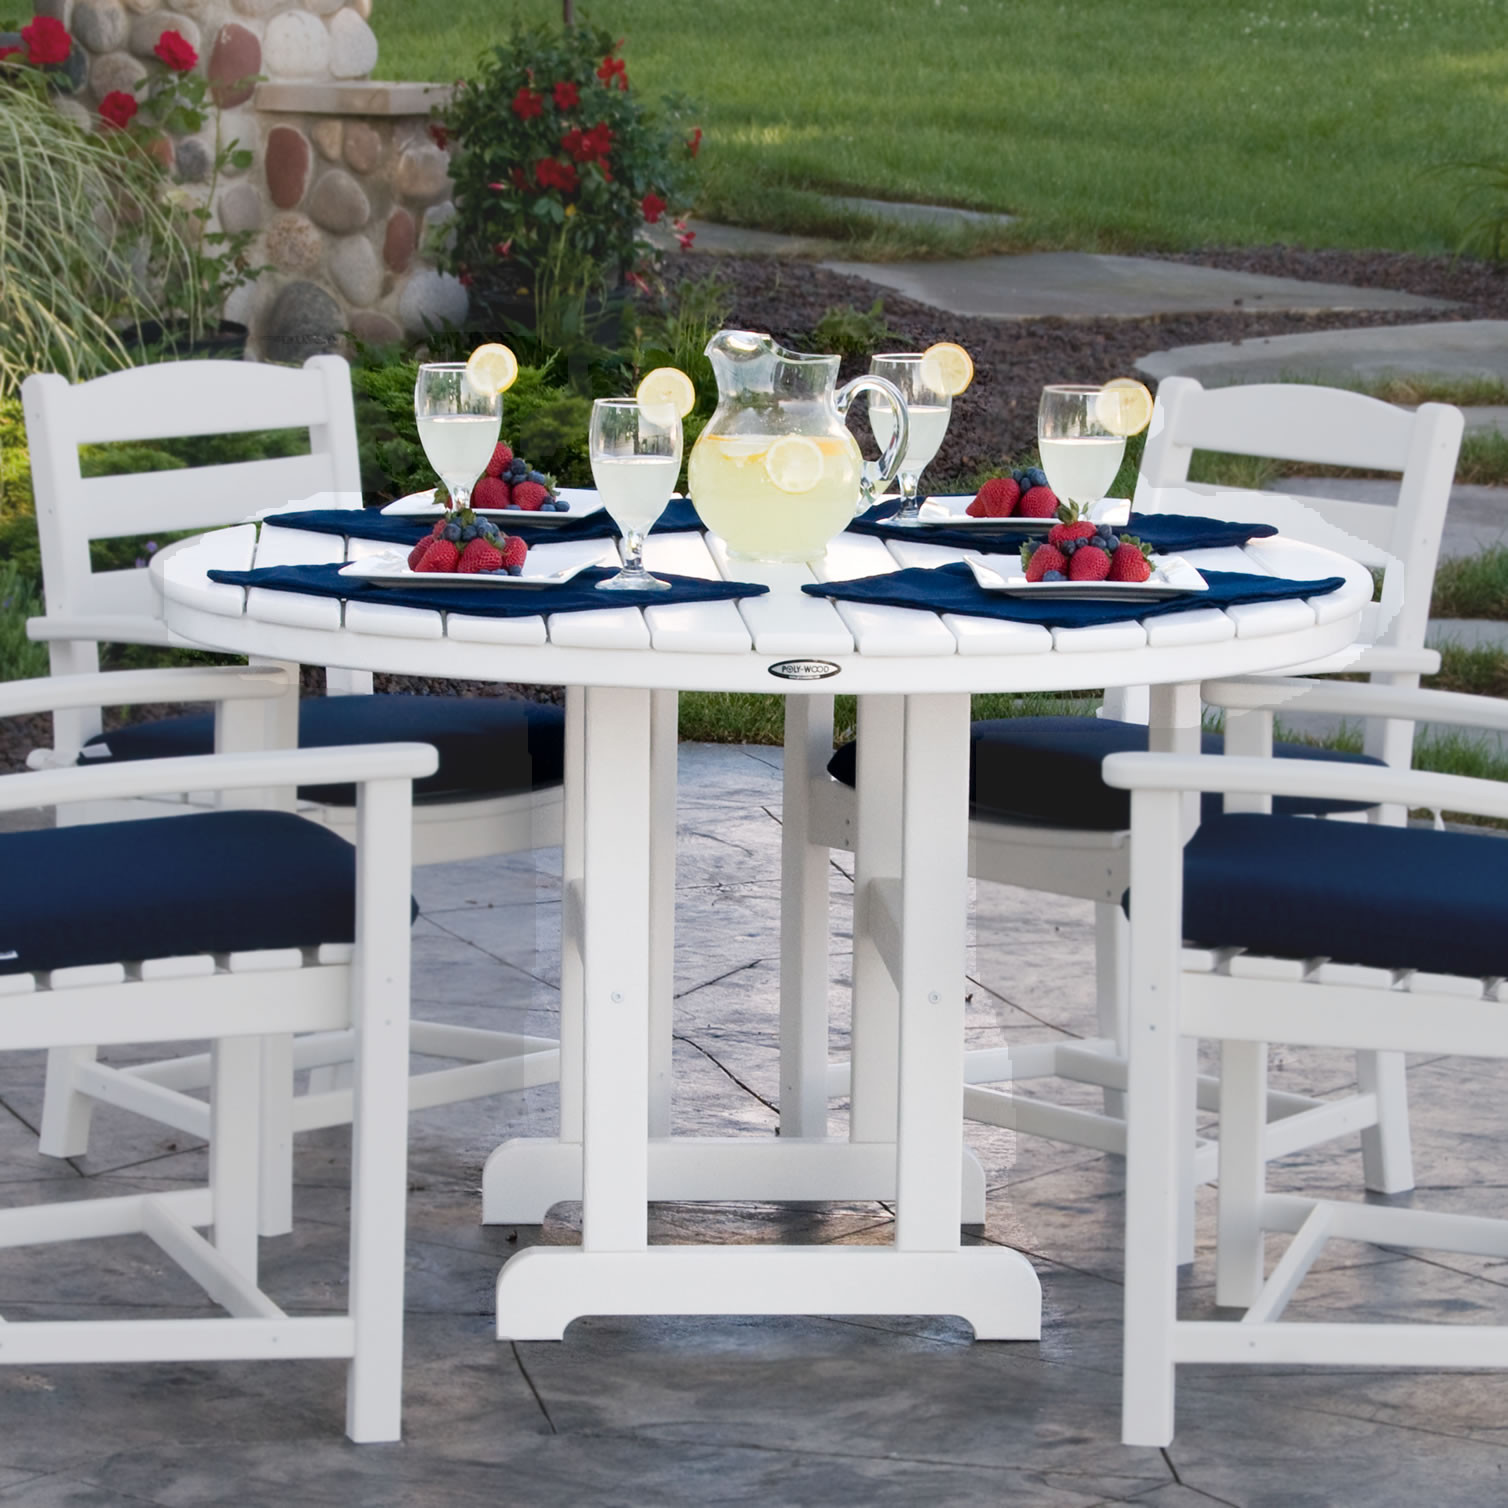 POLYWOOD® Round 48 Inch Dining Table - POLYWOOD® Round 48 Inch Dining Table - Traditional Garden - POLYWOOD